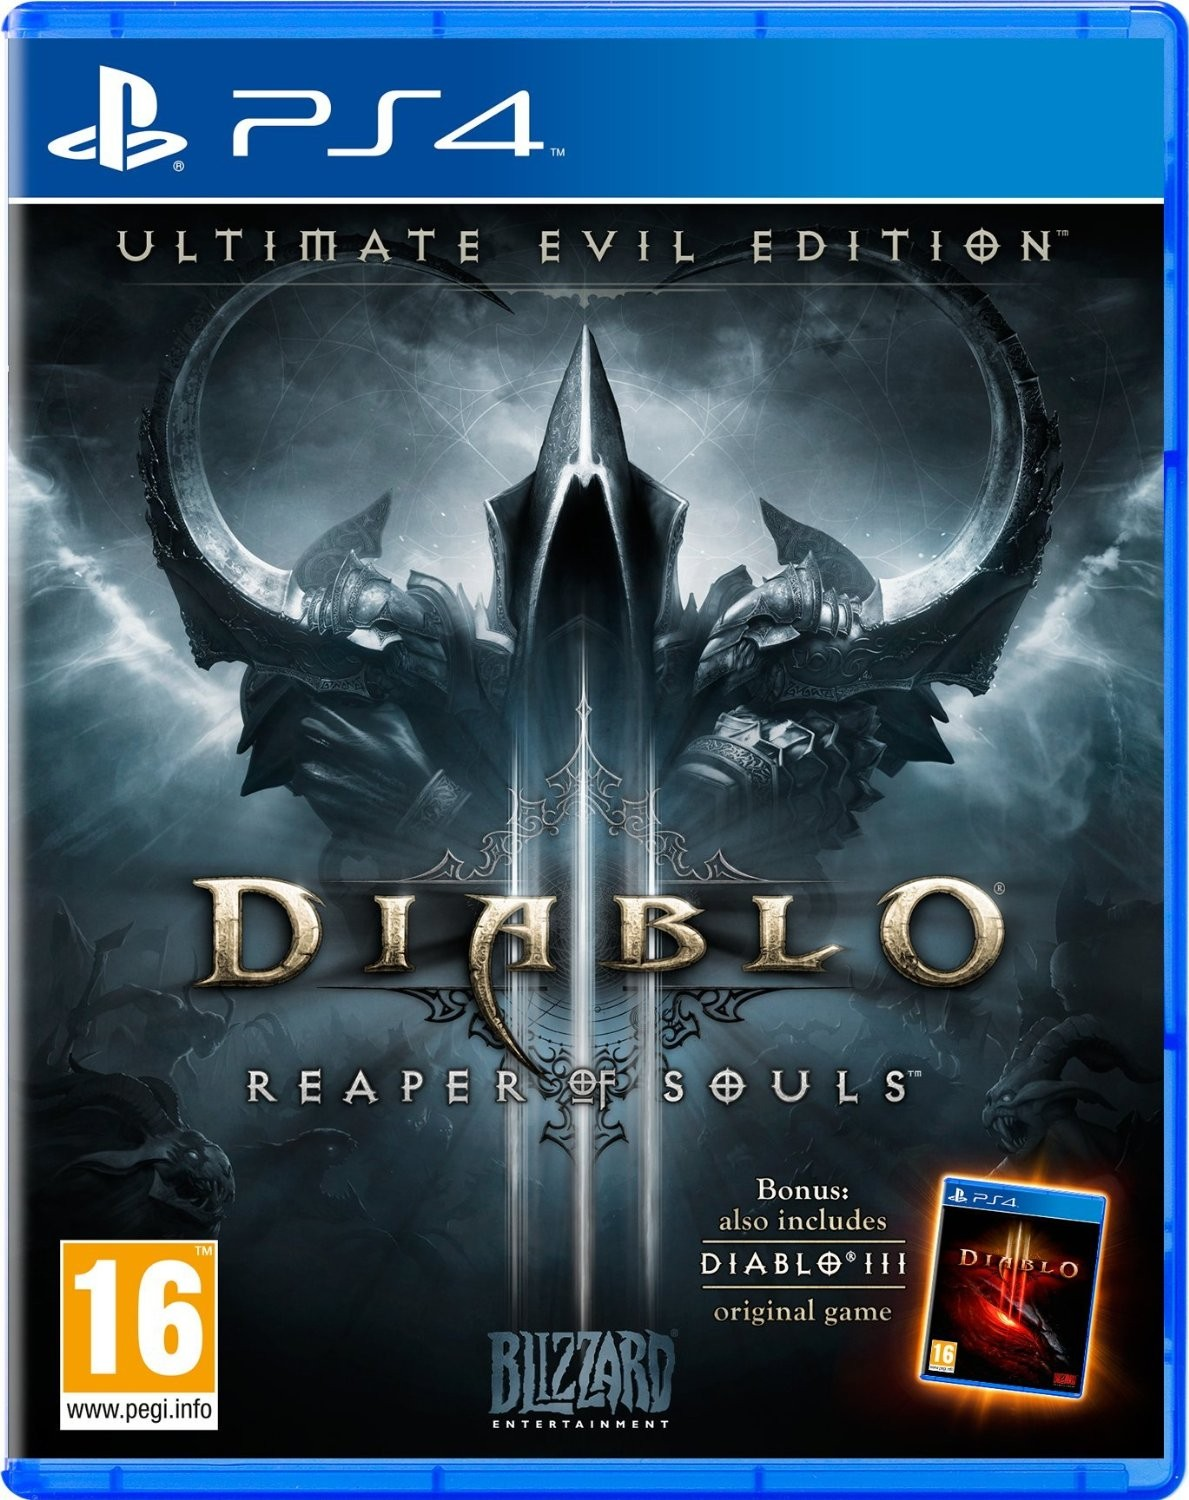 Diablo III Reaper of Souls Ultimate Evil Edition for PlayStation 4 (R2)